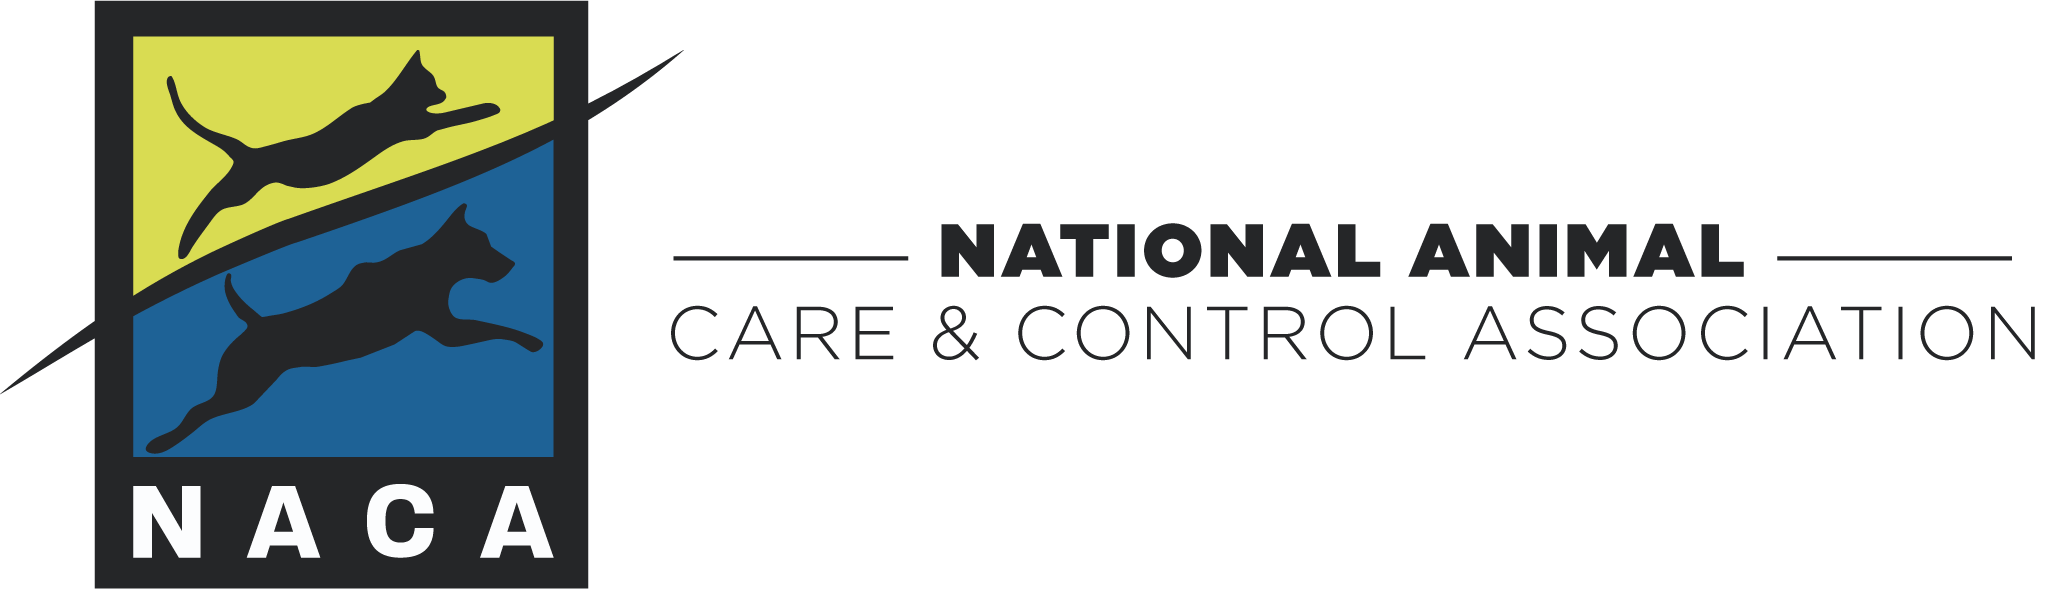 National Animal Care & Control Association